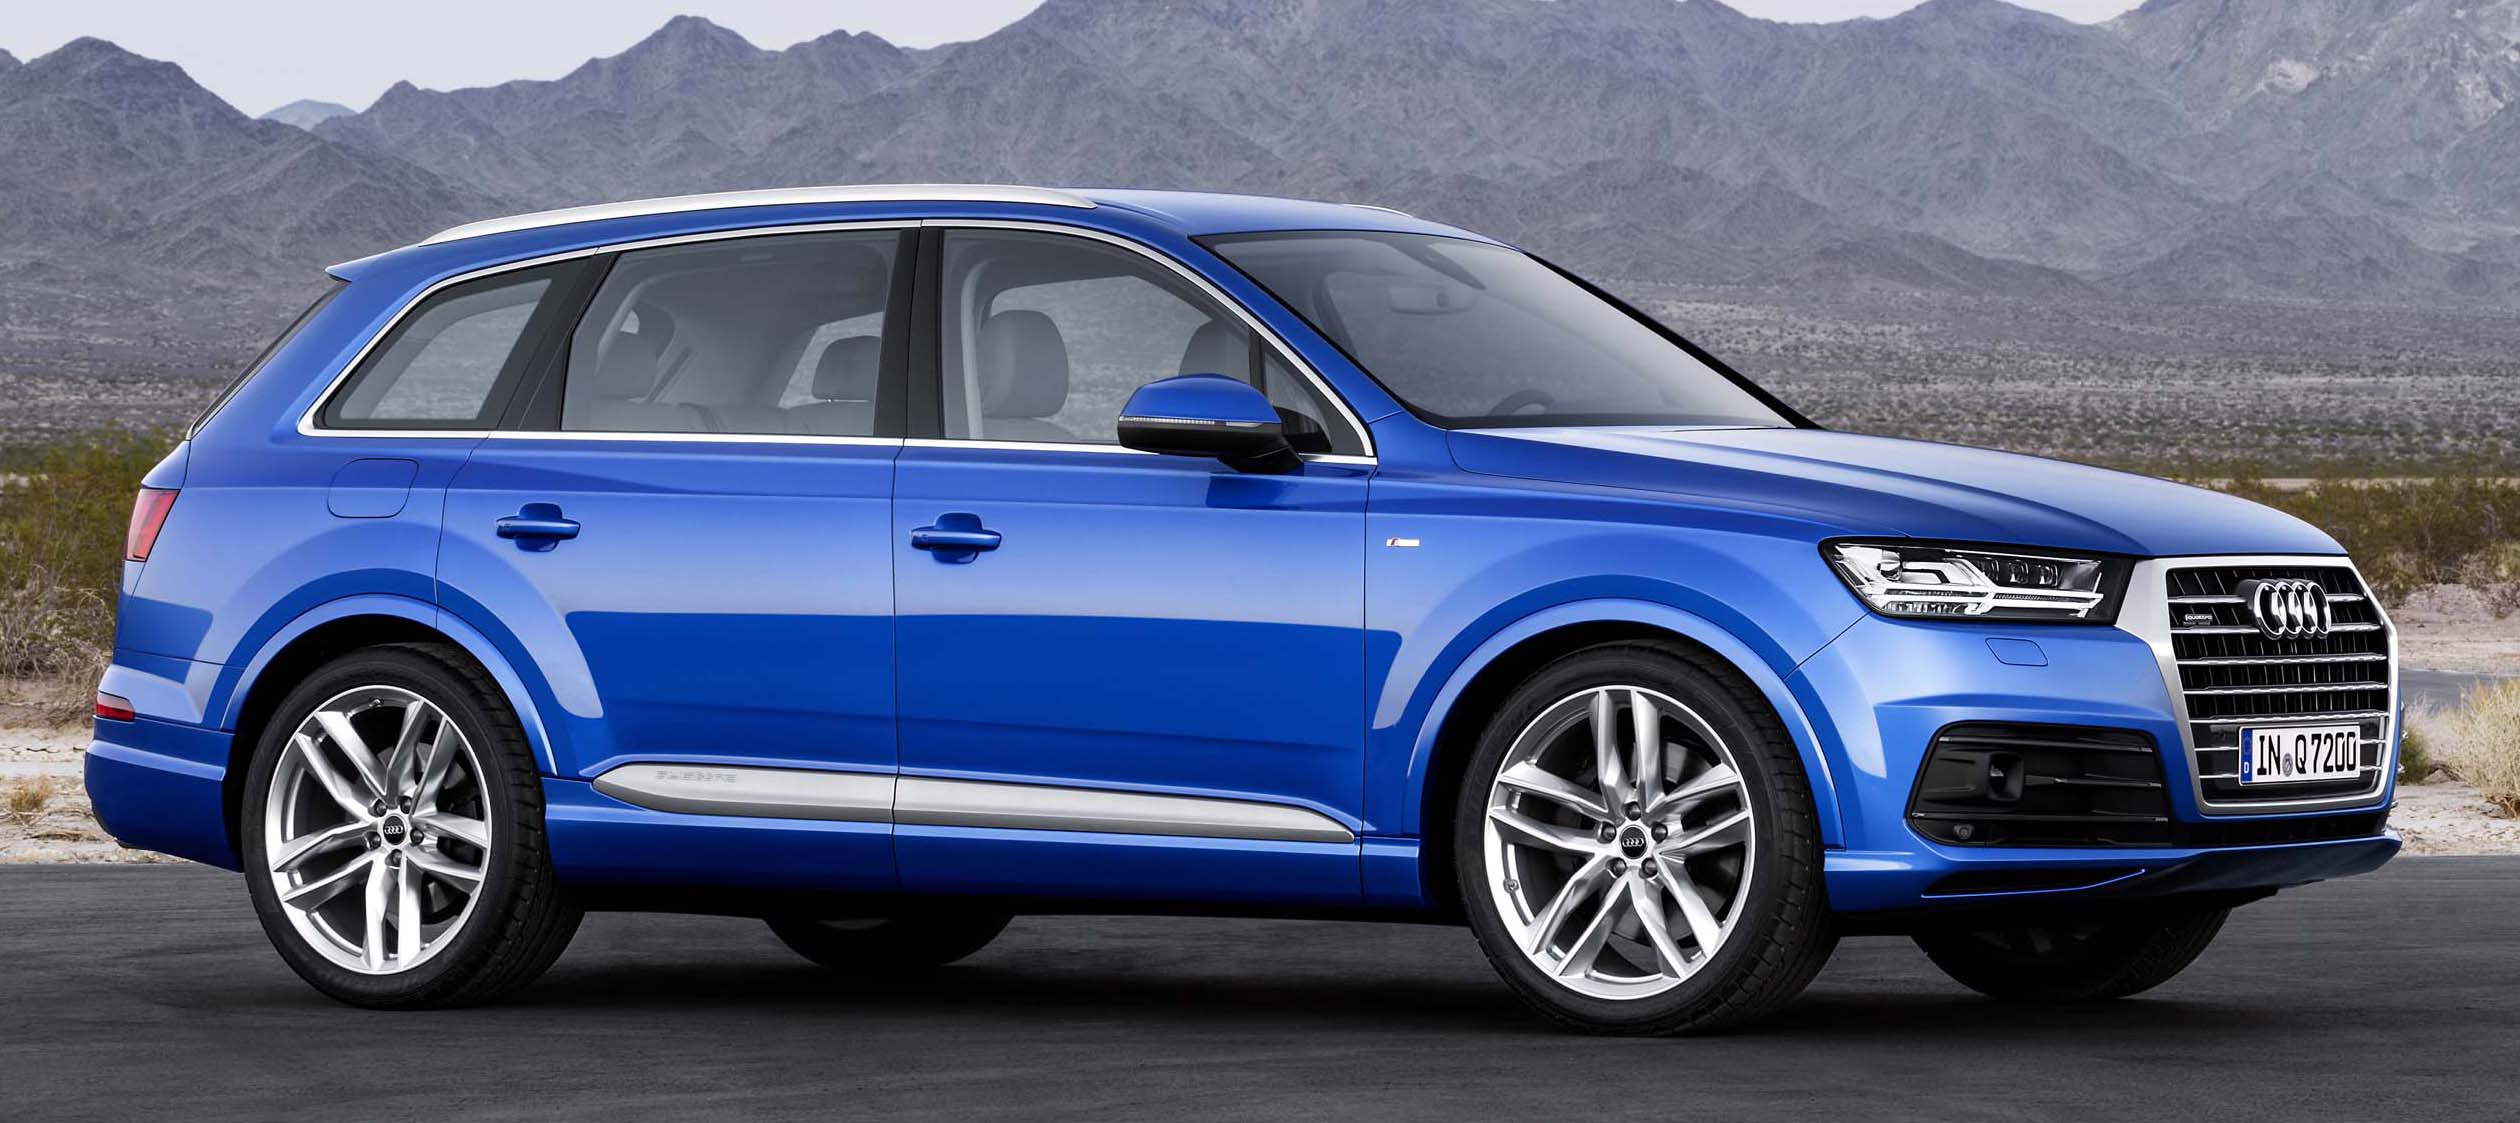 Audi Q7 Second Generation 7 Seater Suv Debuts Image 295879